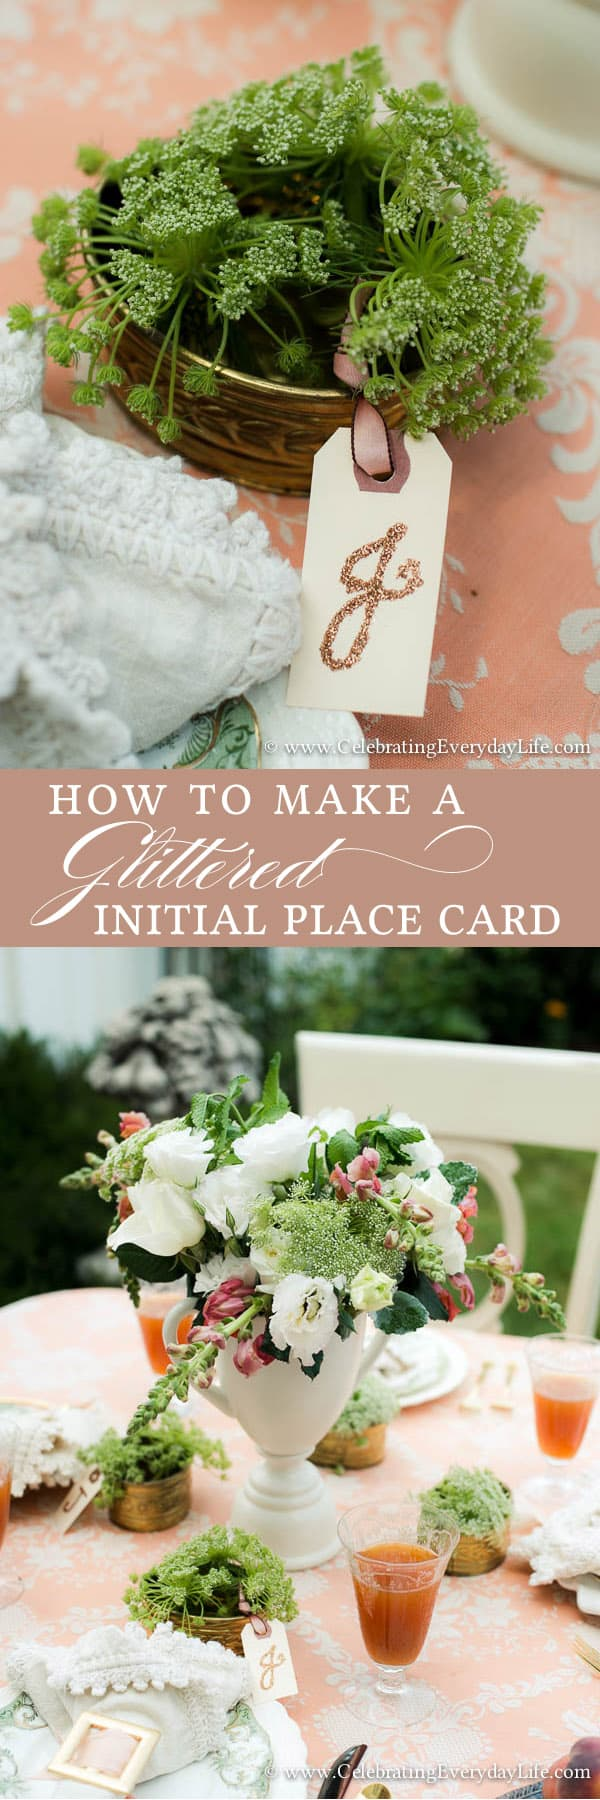 How To Make a Glittered Letter Place Card, How to make a glittered initial place card, Place Card ideas, placecard ideas, unusual placecard idea, chic placecard, easy placecard idea, ribbon placecard, shipping tag placecard, glitter placecard, Celebrating Everyday Life with Jennifer Carroll